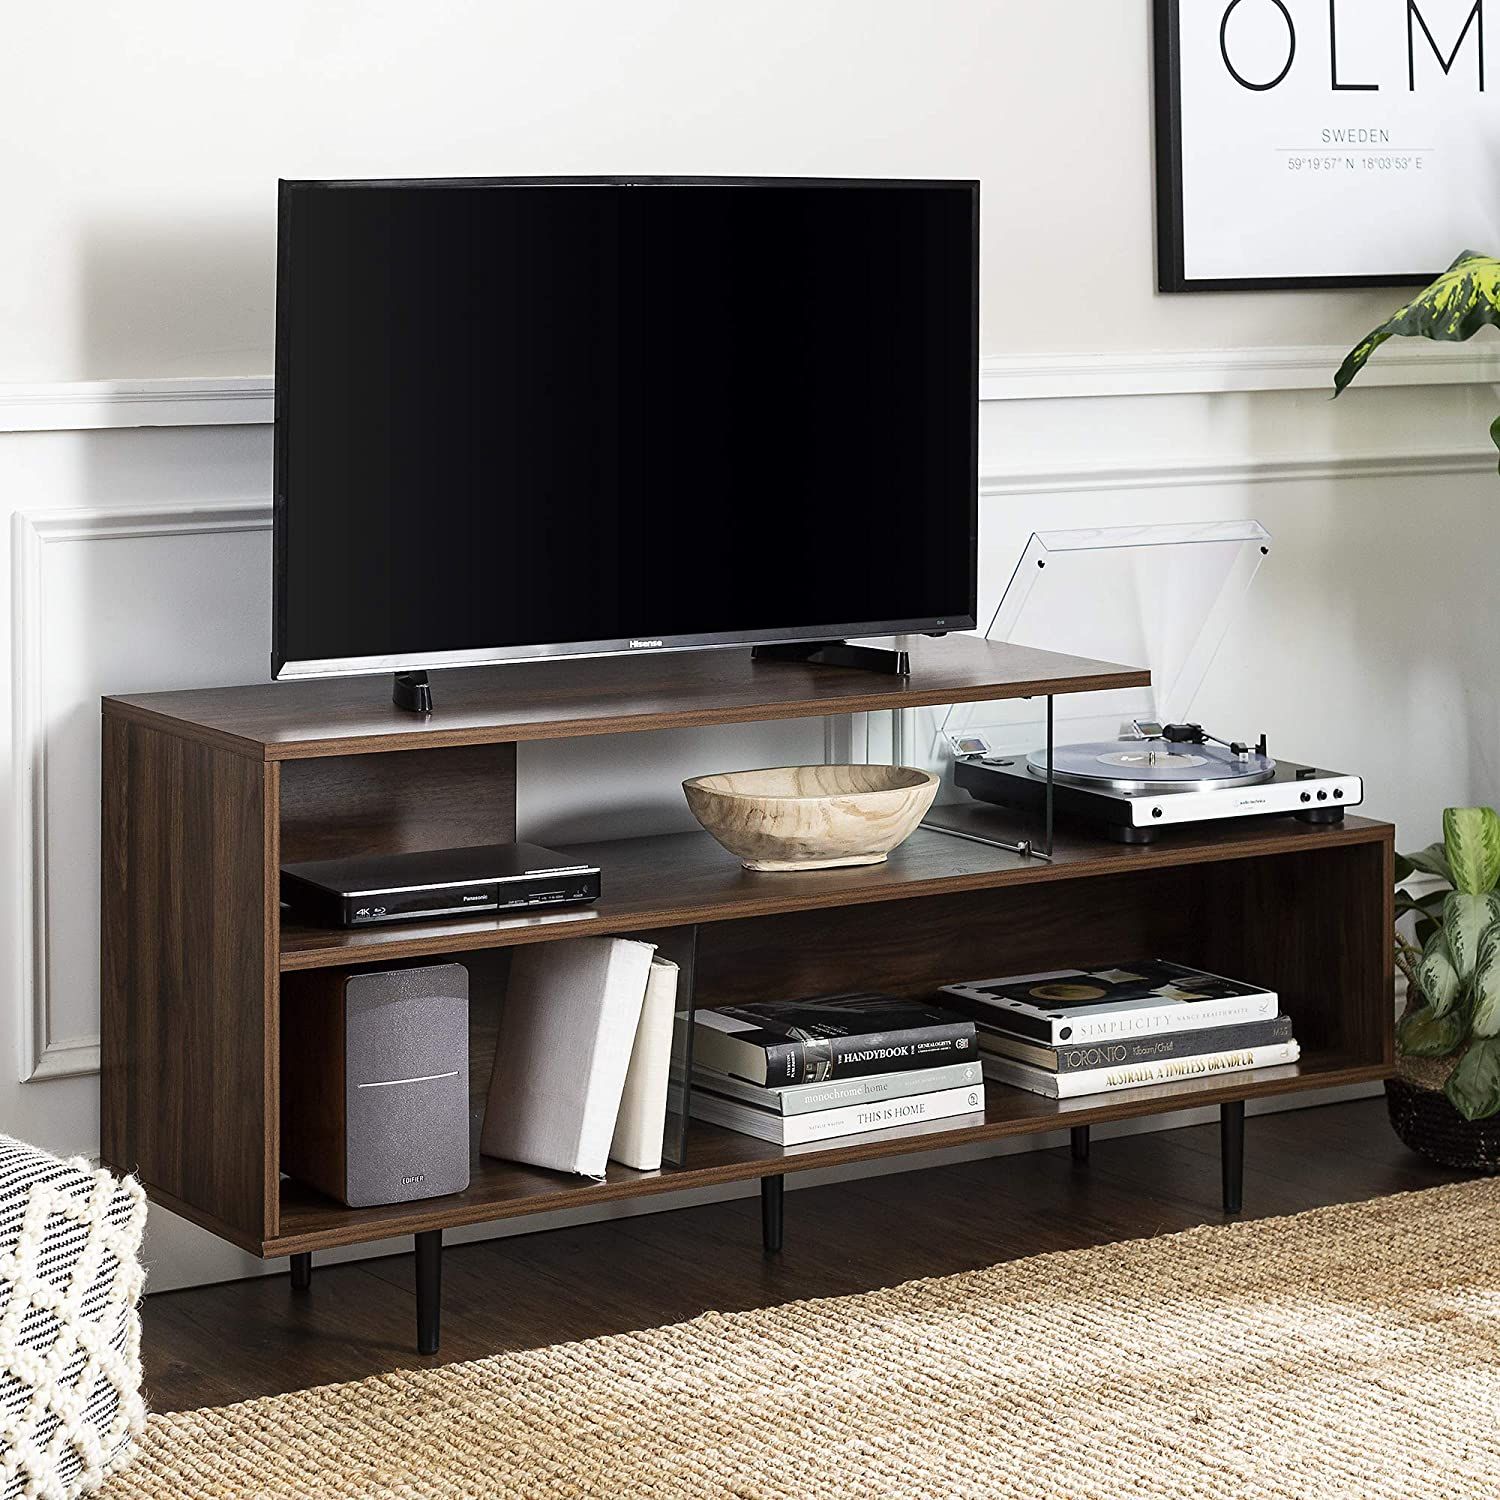 Walker Edison Asymmetrical Wood and Glass Universal Stand with Open Shelves Cabinet Doors TV's up to 64